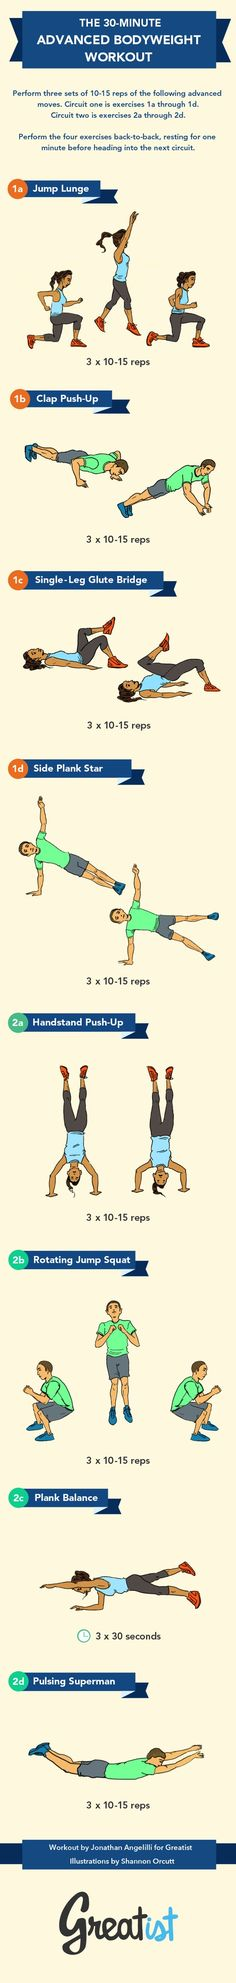 The 30-Minute ADVANCED No-Gym Bodyweight Workout